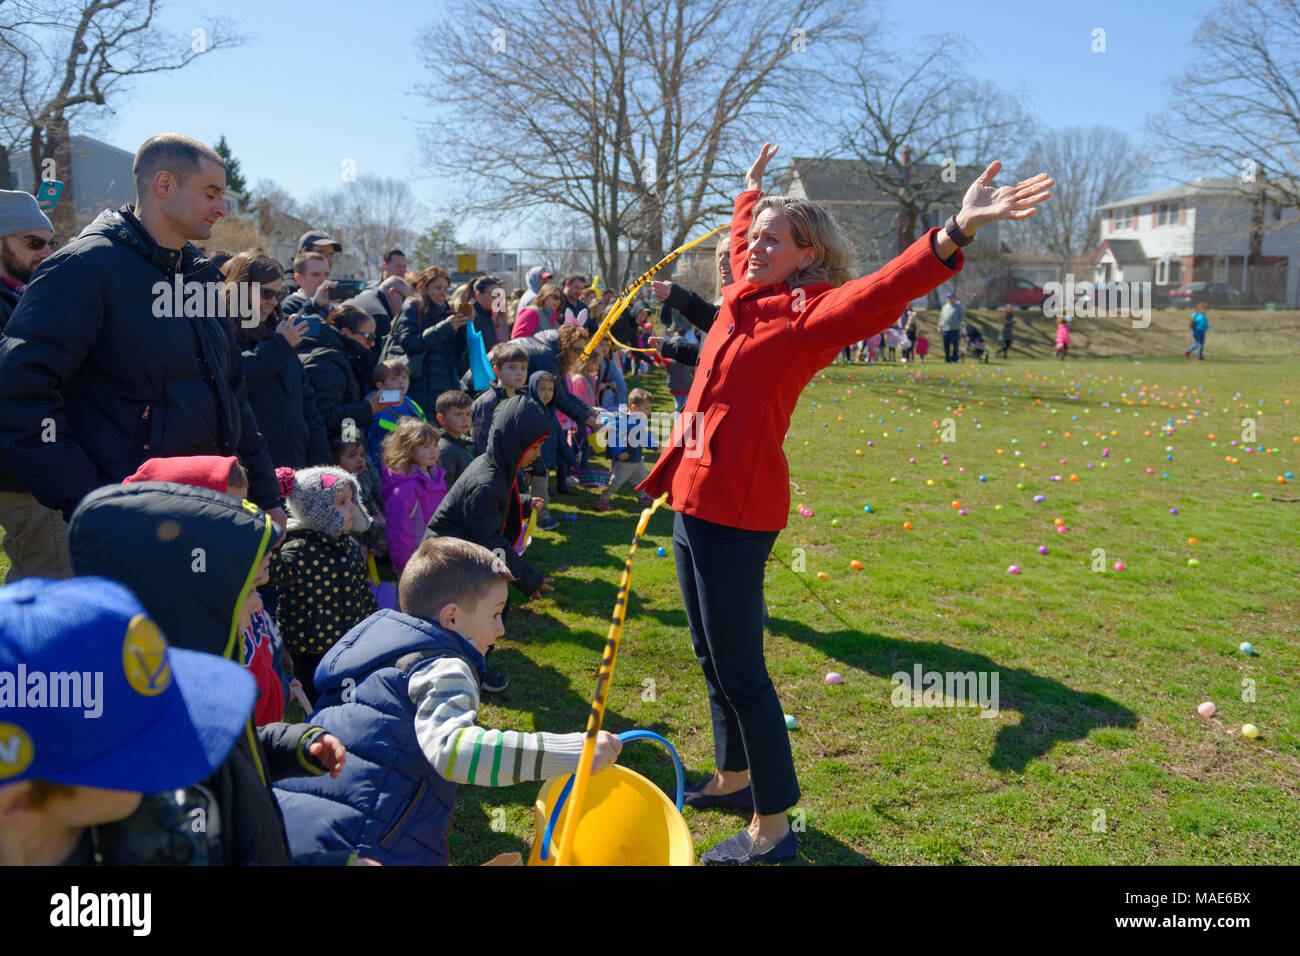 North Merrick, New York, USA. 31st Mar, 2018. Nassau County Executive LAURA CURRAN flings her arms up high after cutting the yellow tape to start the Egg Hunt at the Annual Eggstravaganza, held at Fraser Park and hosted by North and Central Merrick Civic Association (NCMCA) and Merrick's American Legion Auxiliary Unit 1282. Young children rush to collect eggs in their Easter baskets. Credit: Ann Parry/ZUMA Wire/Alamy Live News - Stock Image